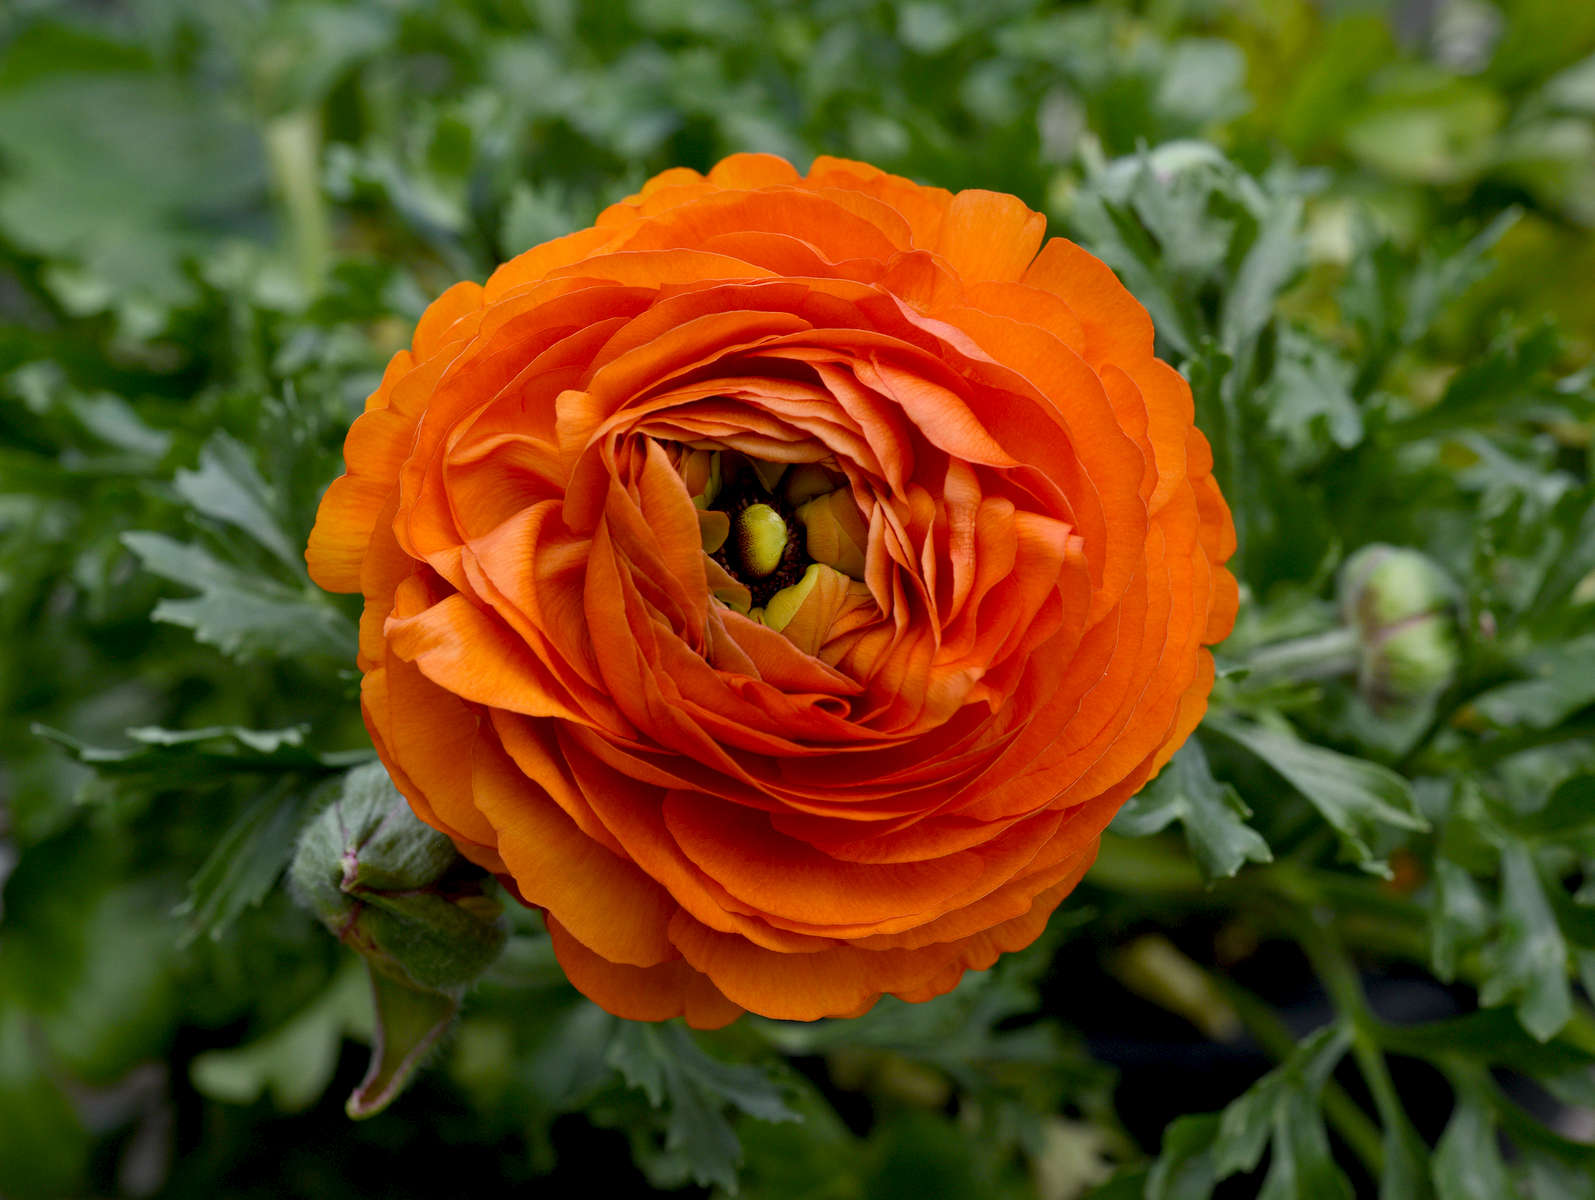 TRURO -- A mache orange ranunculus at Bayberry Gardens & Landscaping on Wednesday, April 11, 2018. Christine Hochkeppel for the Provincetown Banner